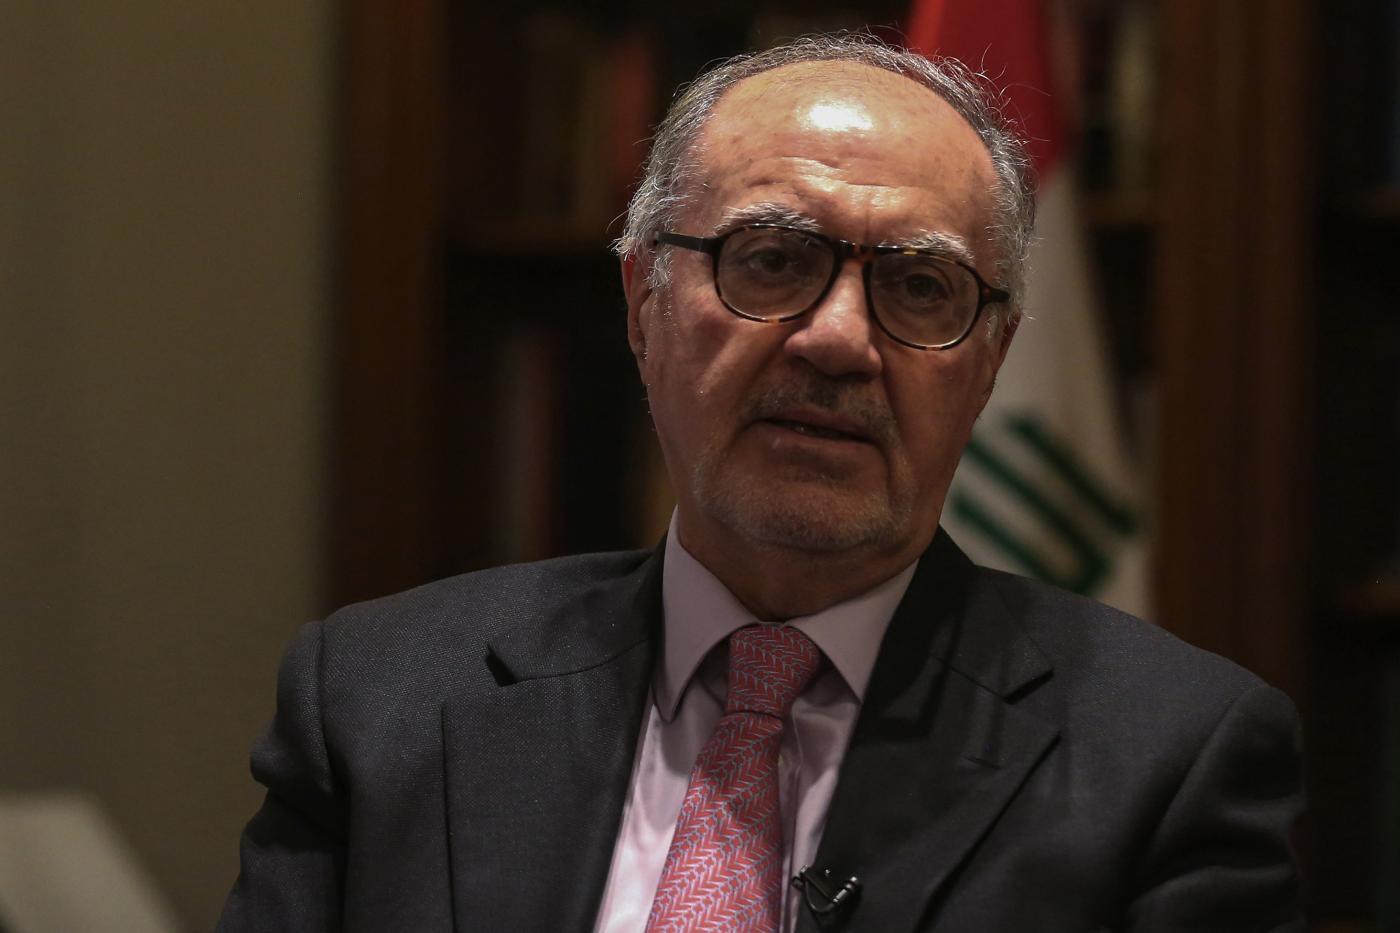 Ali Allawi serves as both Iraq's deputy prime minister and minister of finance.